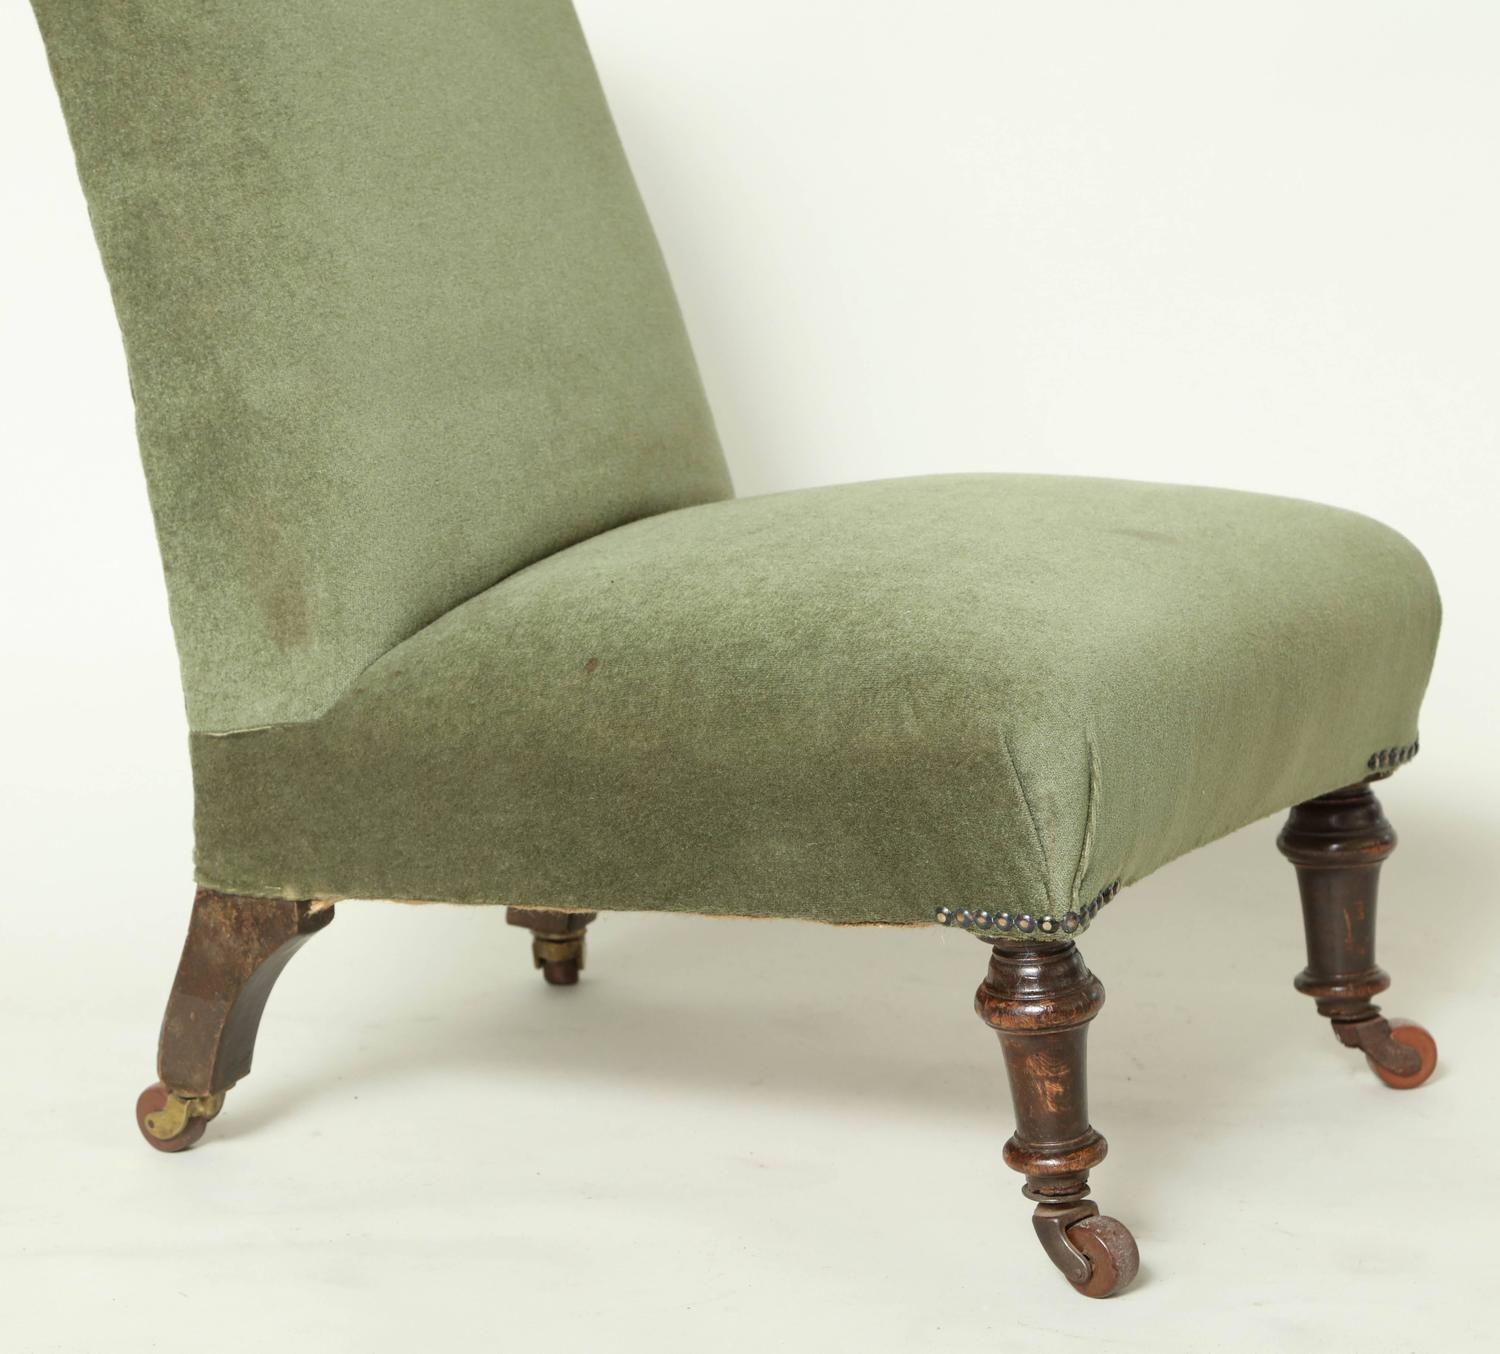 upholstered slipper chair pottery barn everyday edwardian for sale at 1stdibs